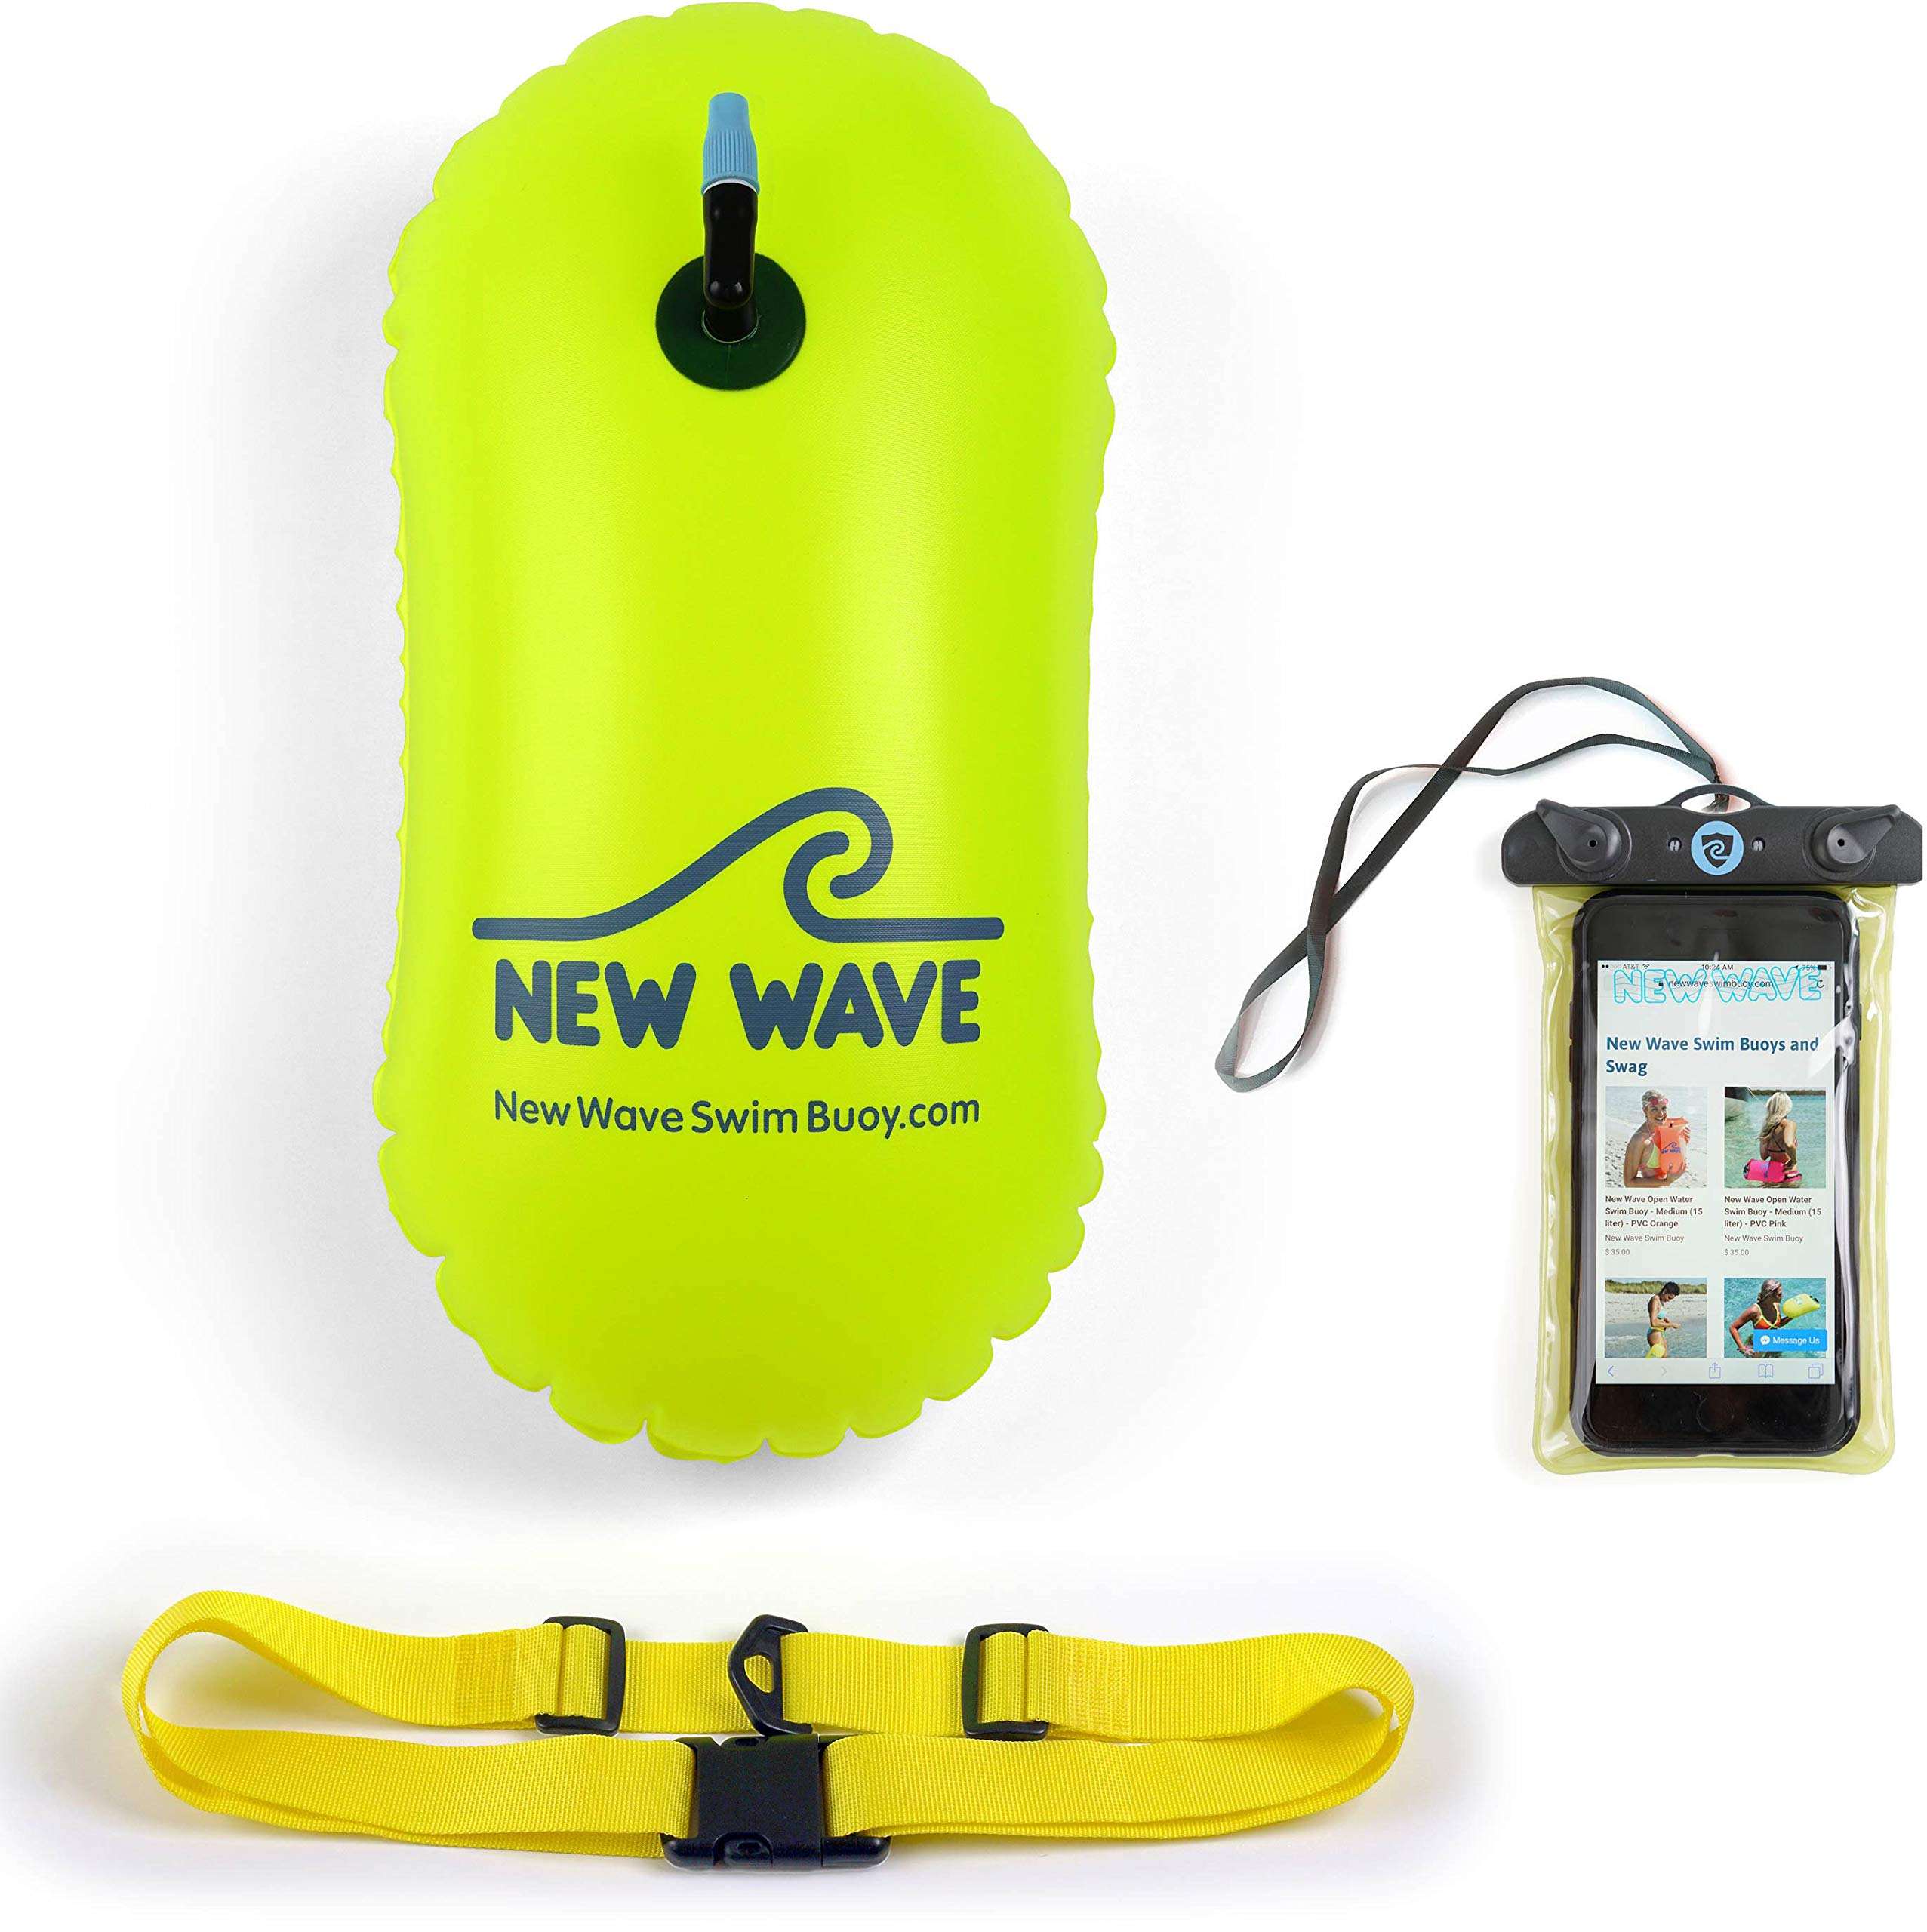 New Wave Swim Bubble for Open Water Swimmers and Triathletes - No Dry-Bag - Waterproof Phone Case & Swim Bubble Bundle (Green)